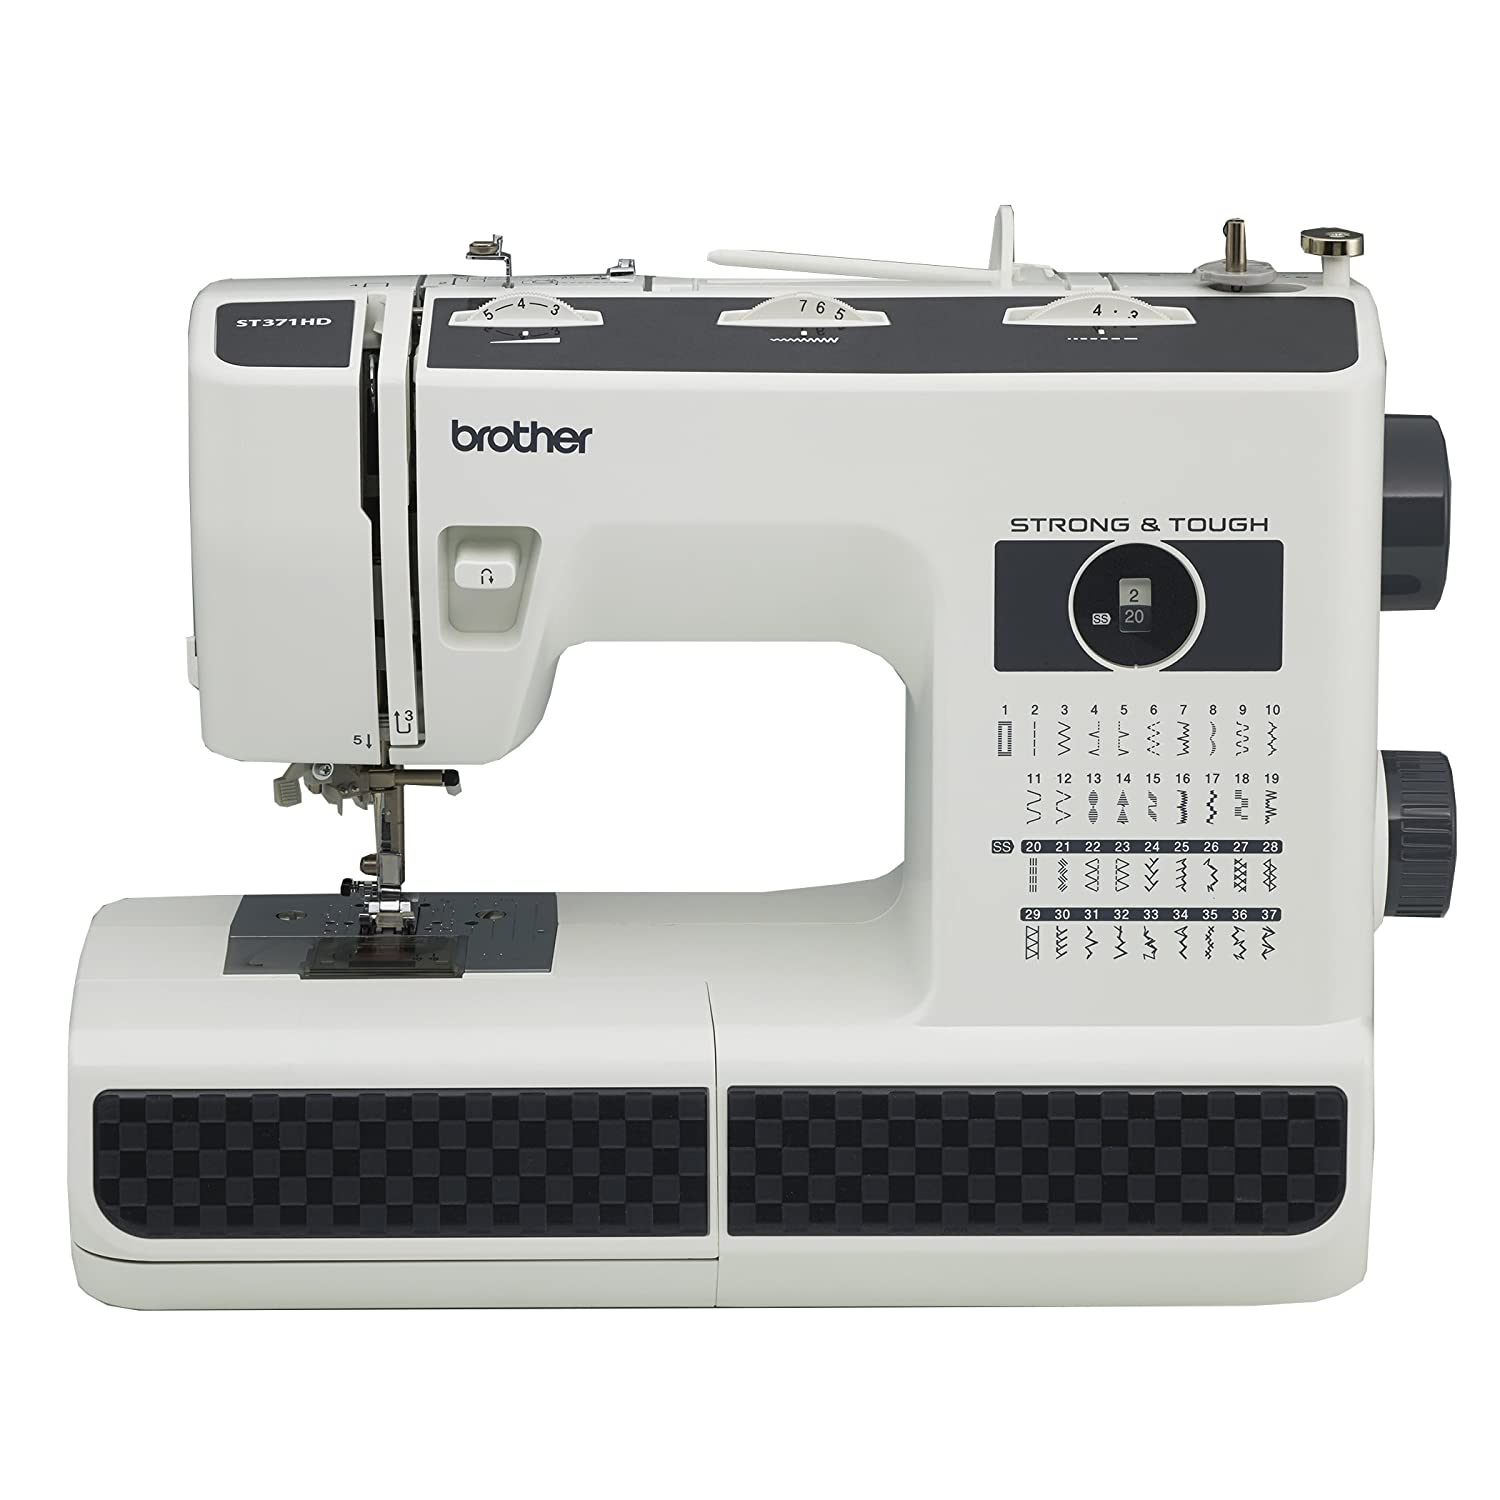 Maquina De Coser Brother St371hd Industrial Trabajo Pesado